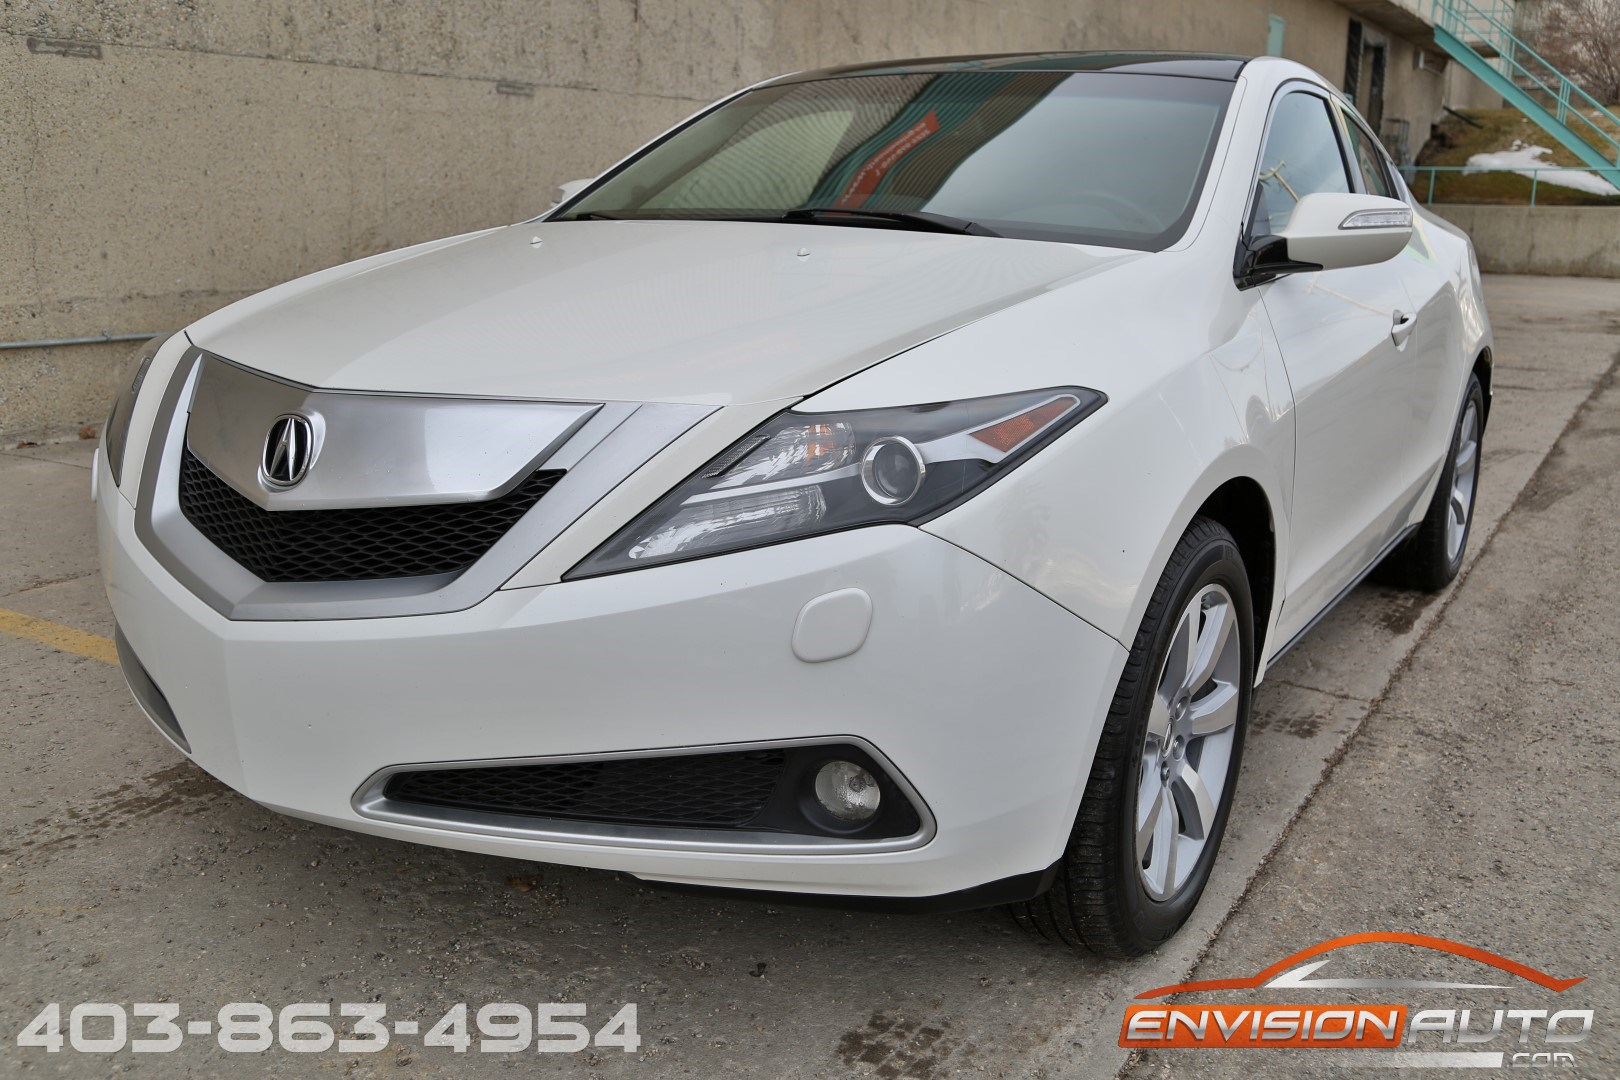 2010 acura zdx technology package envision auto. Black Bedroom Furniture Sets. Home Design Ideas